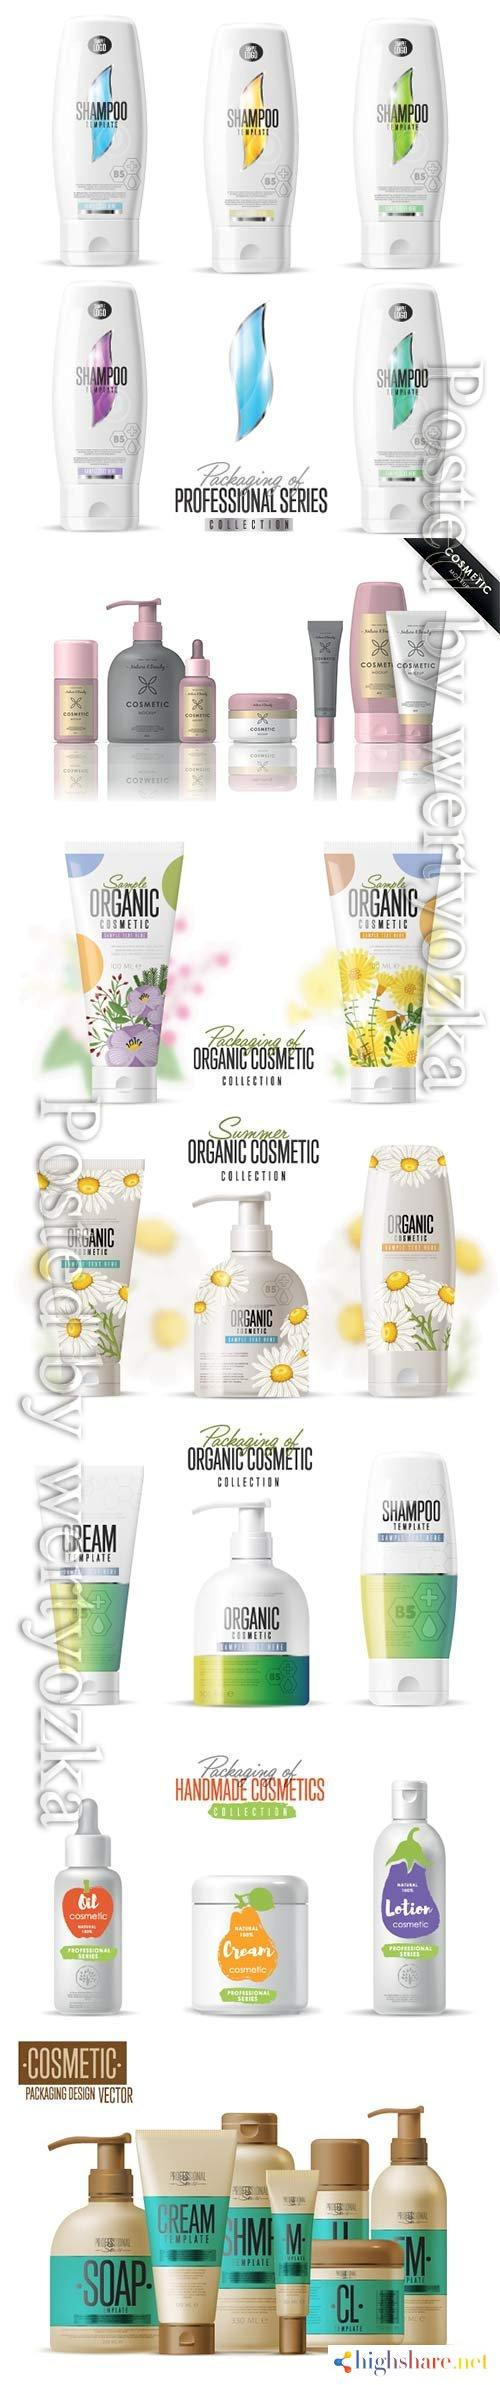 cosmetic brand template vector packaging body care product 5f3ffc7ce8c29 - Cosmetic brand template, vector packaging, body care product